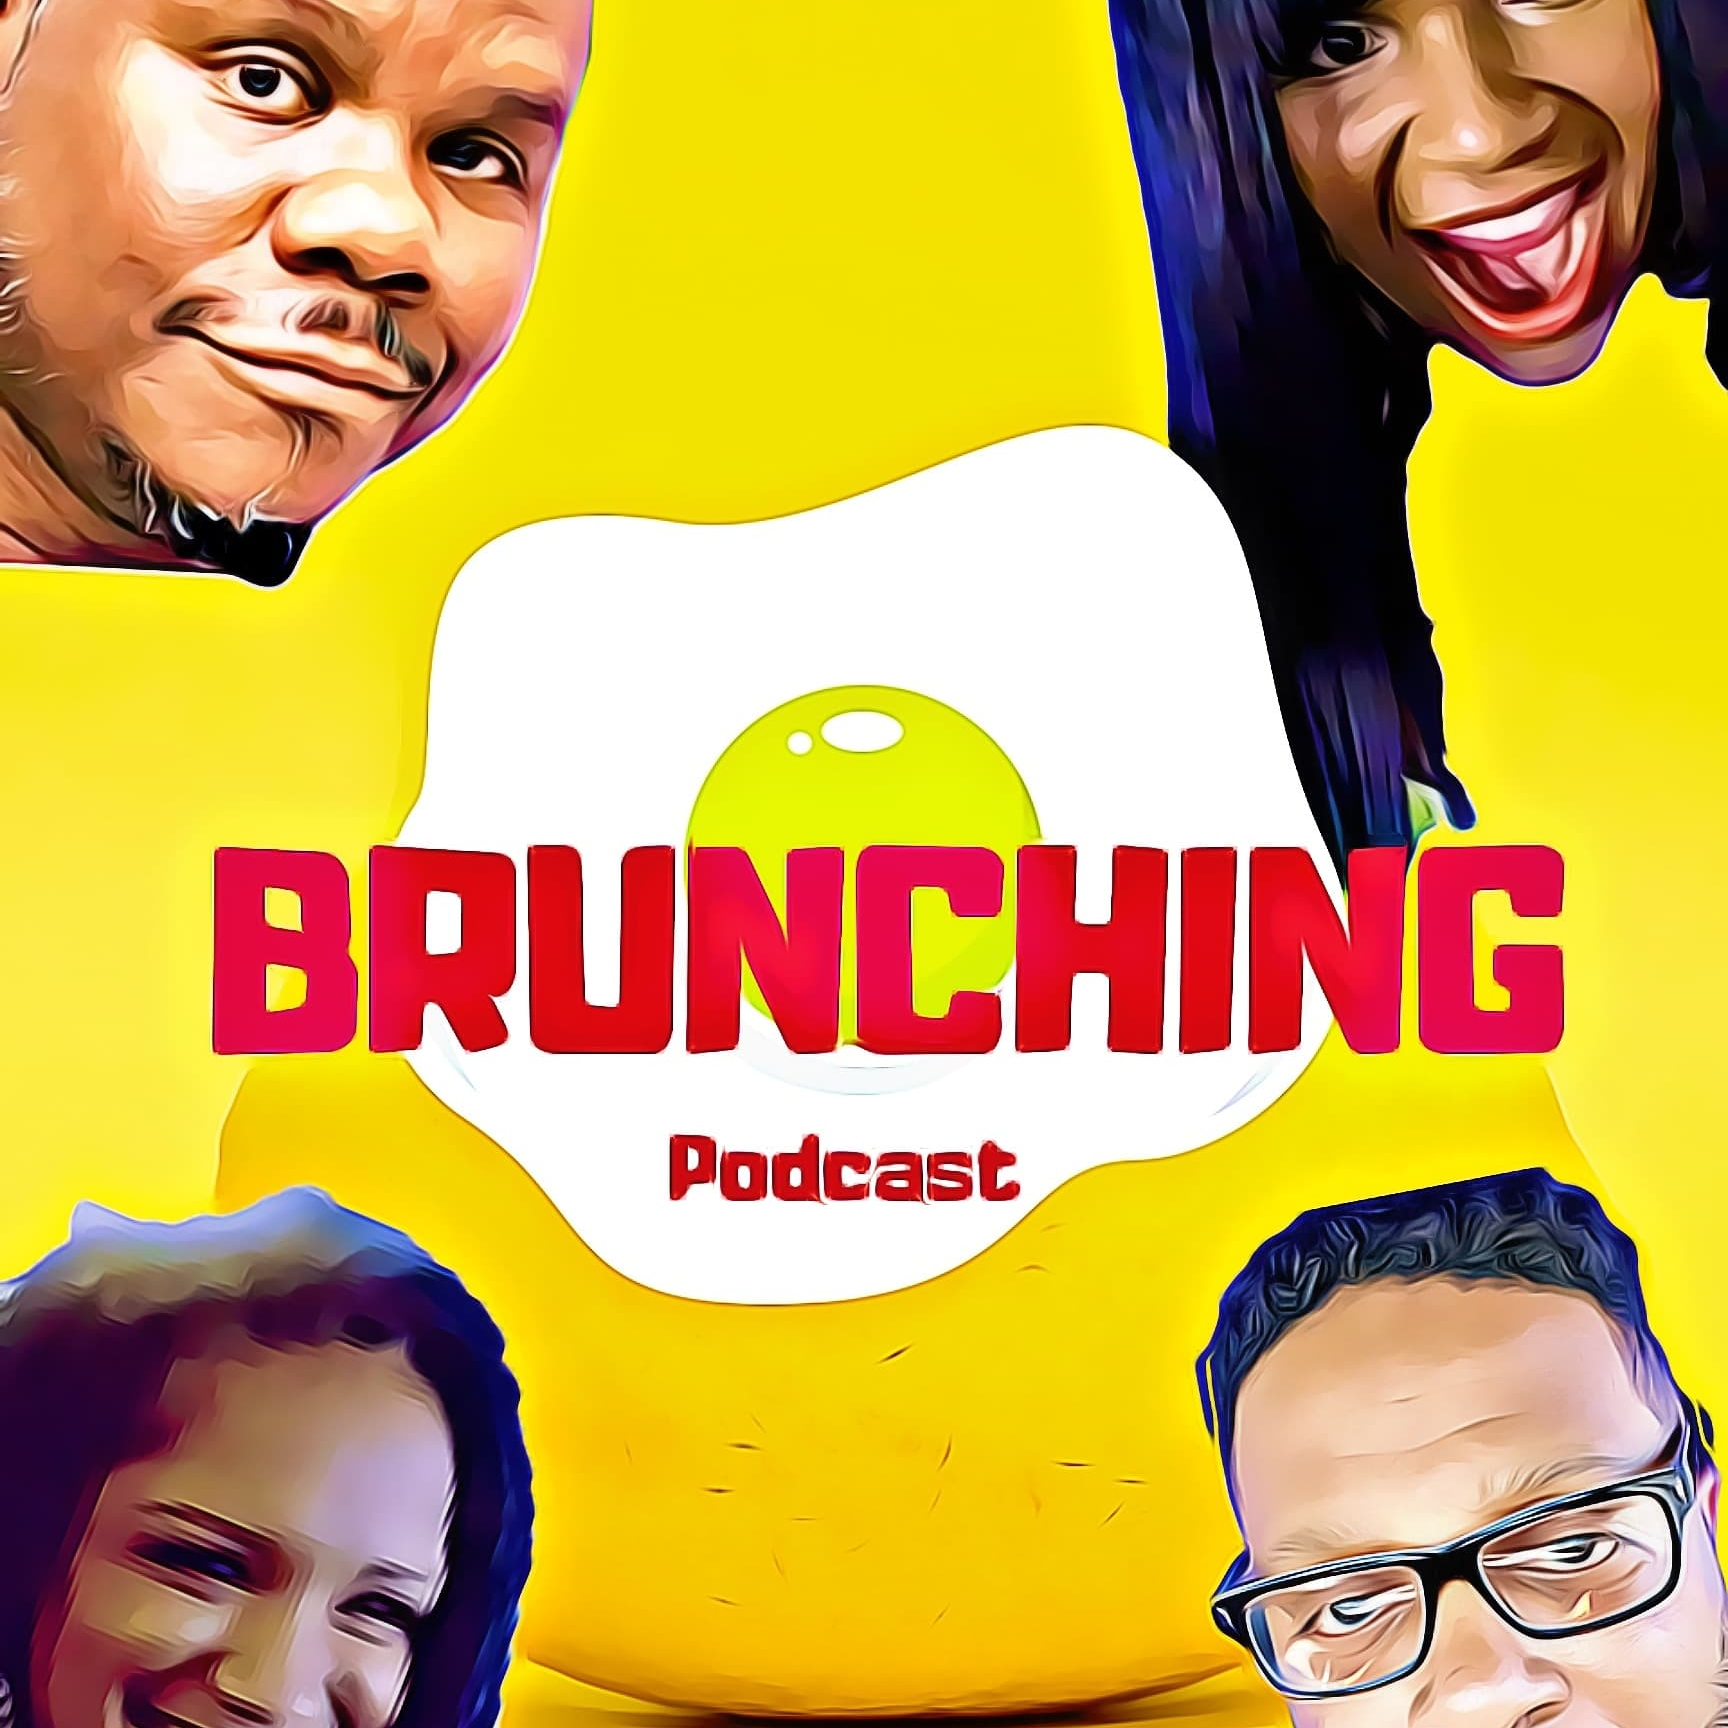 BrunchingPodcast